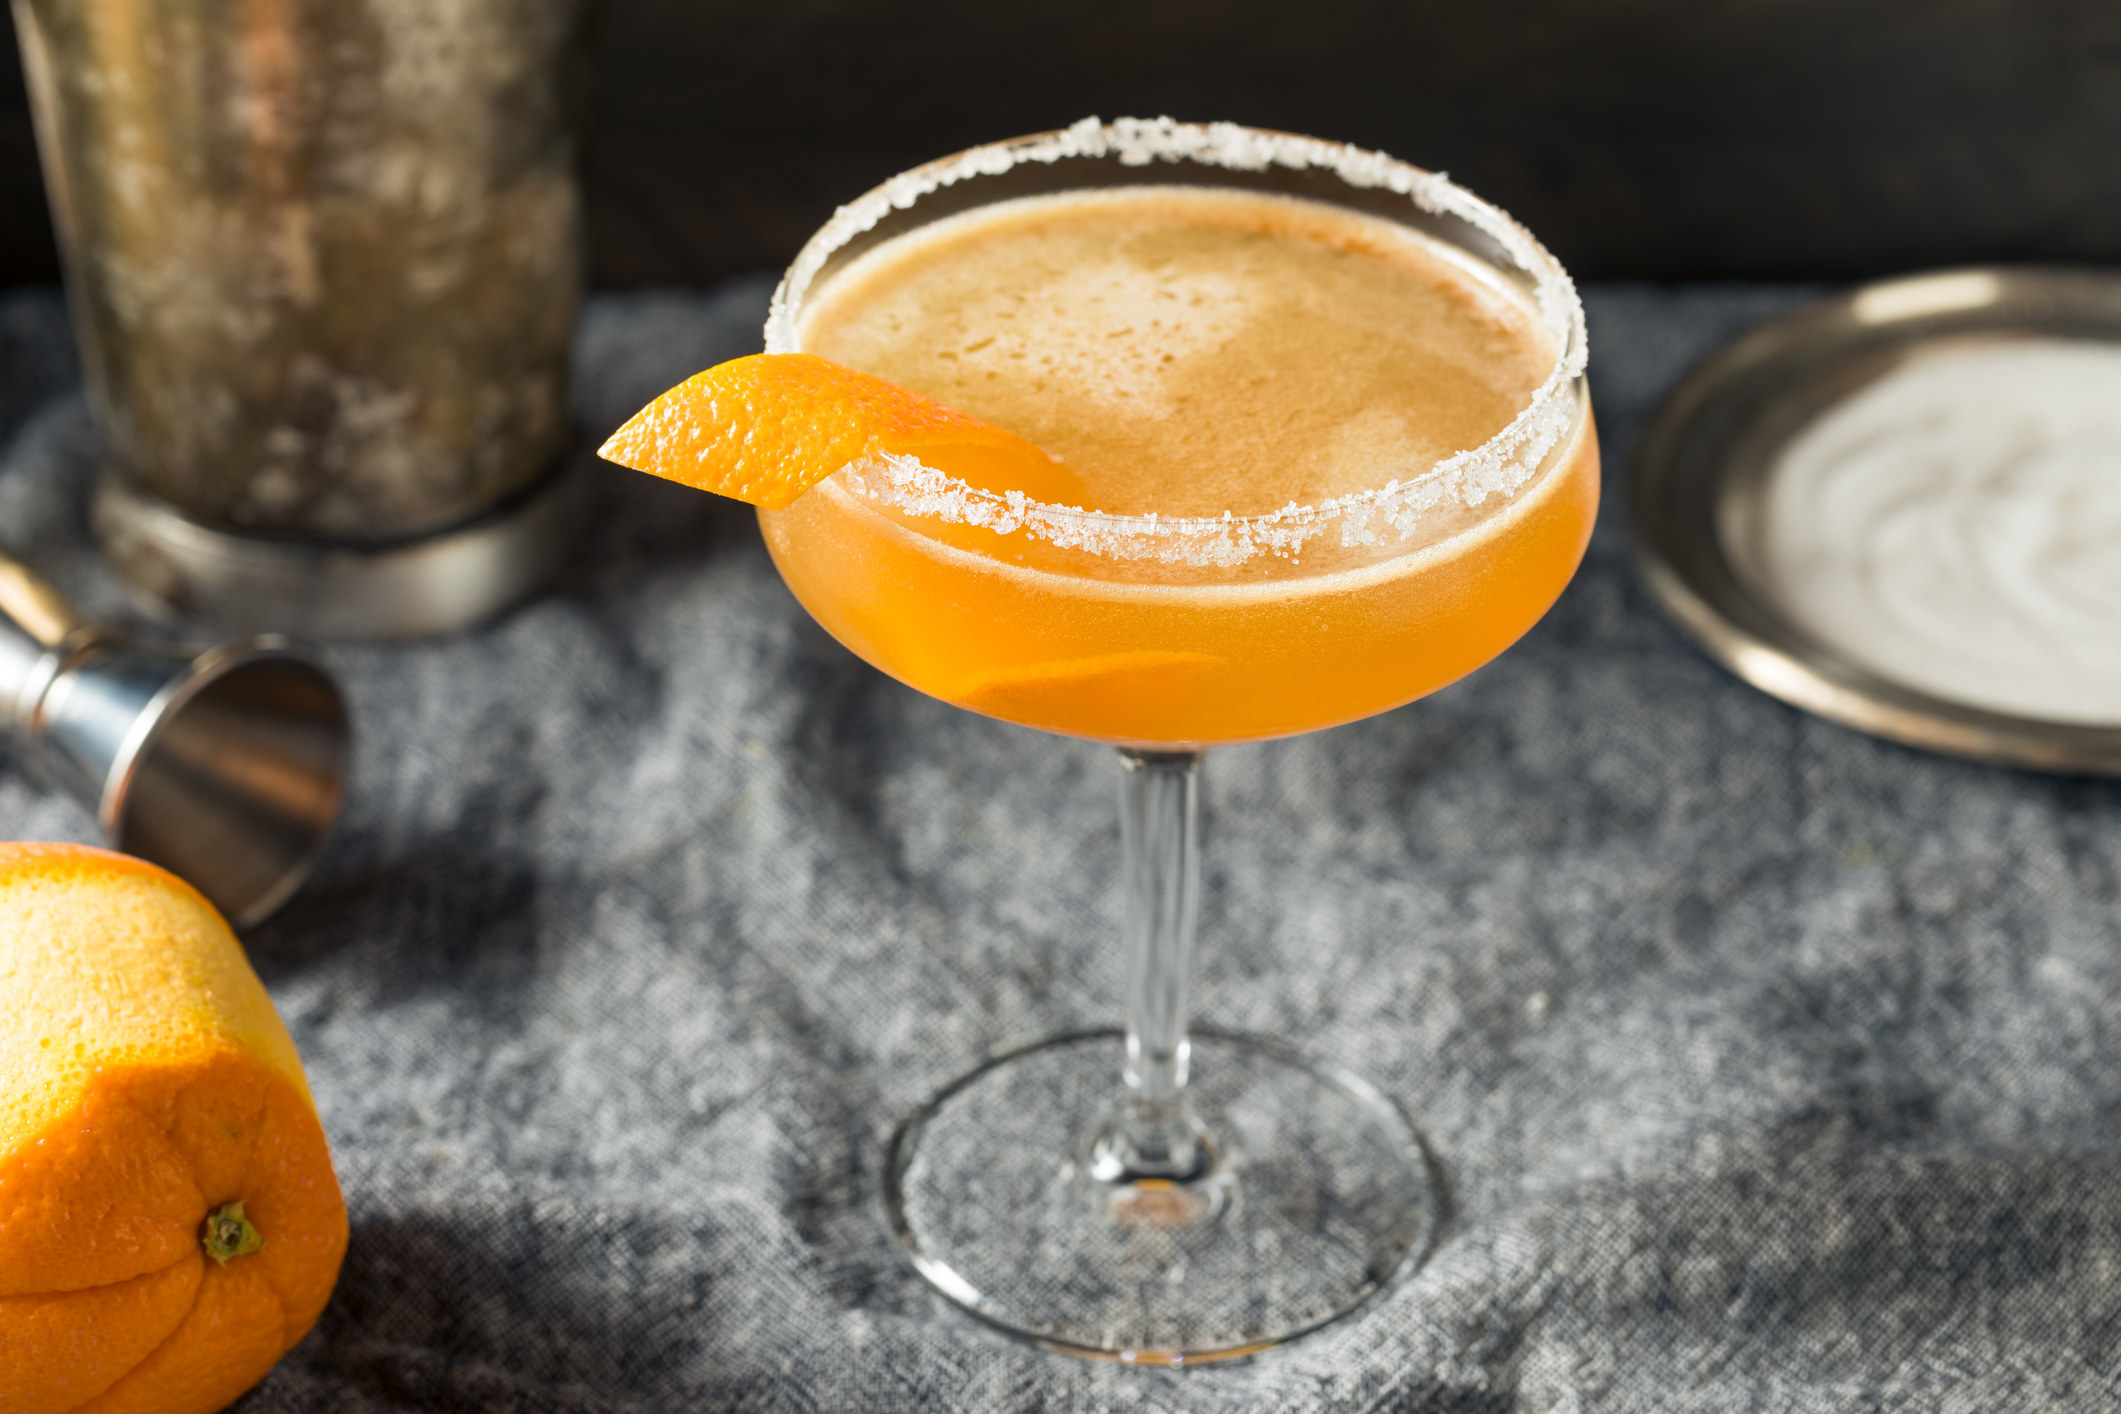 A Sidecar cocktail in a coupe glass.